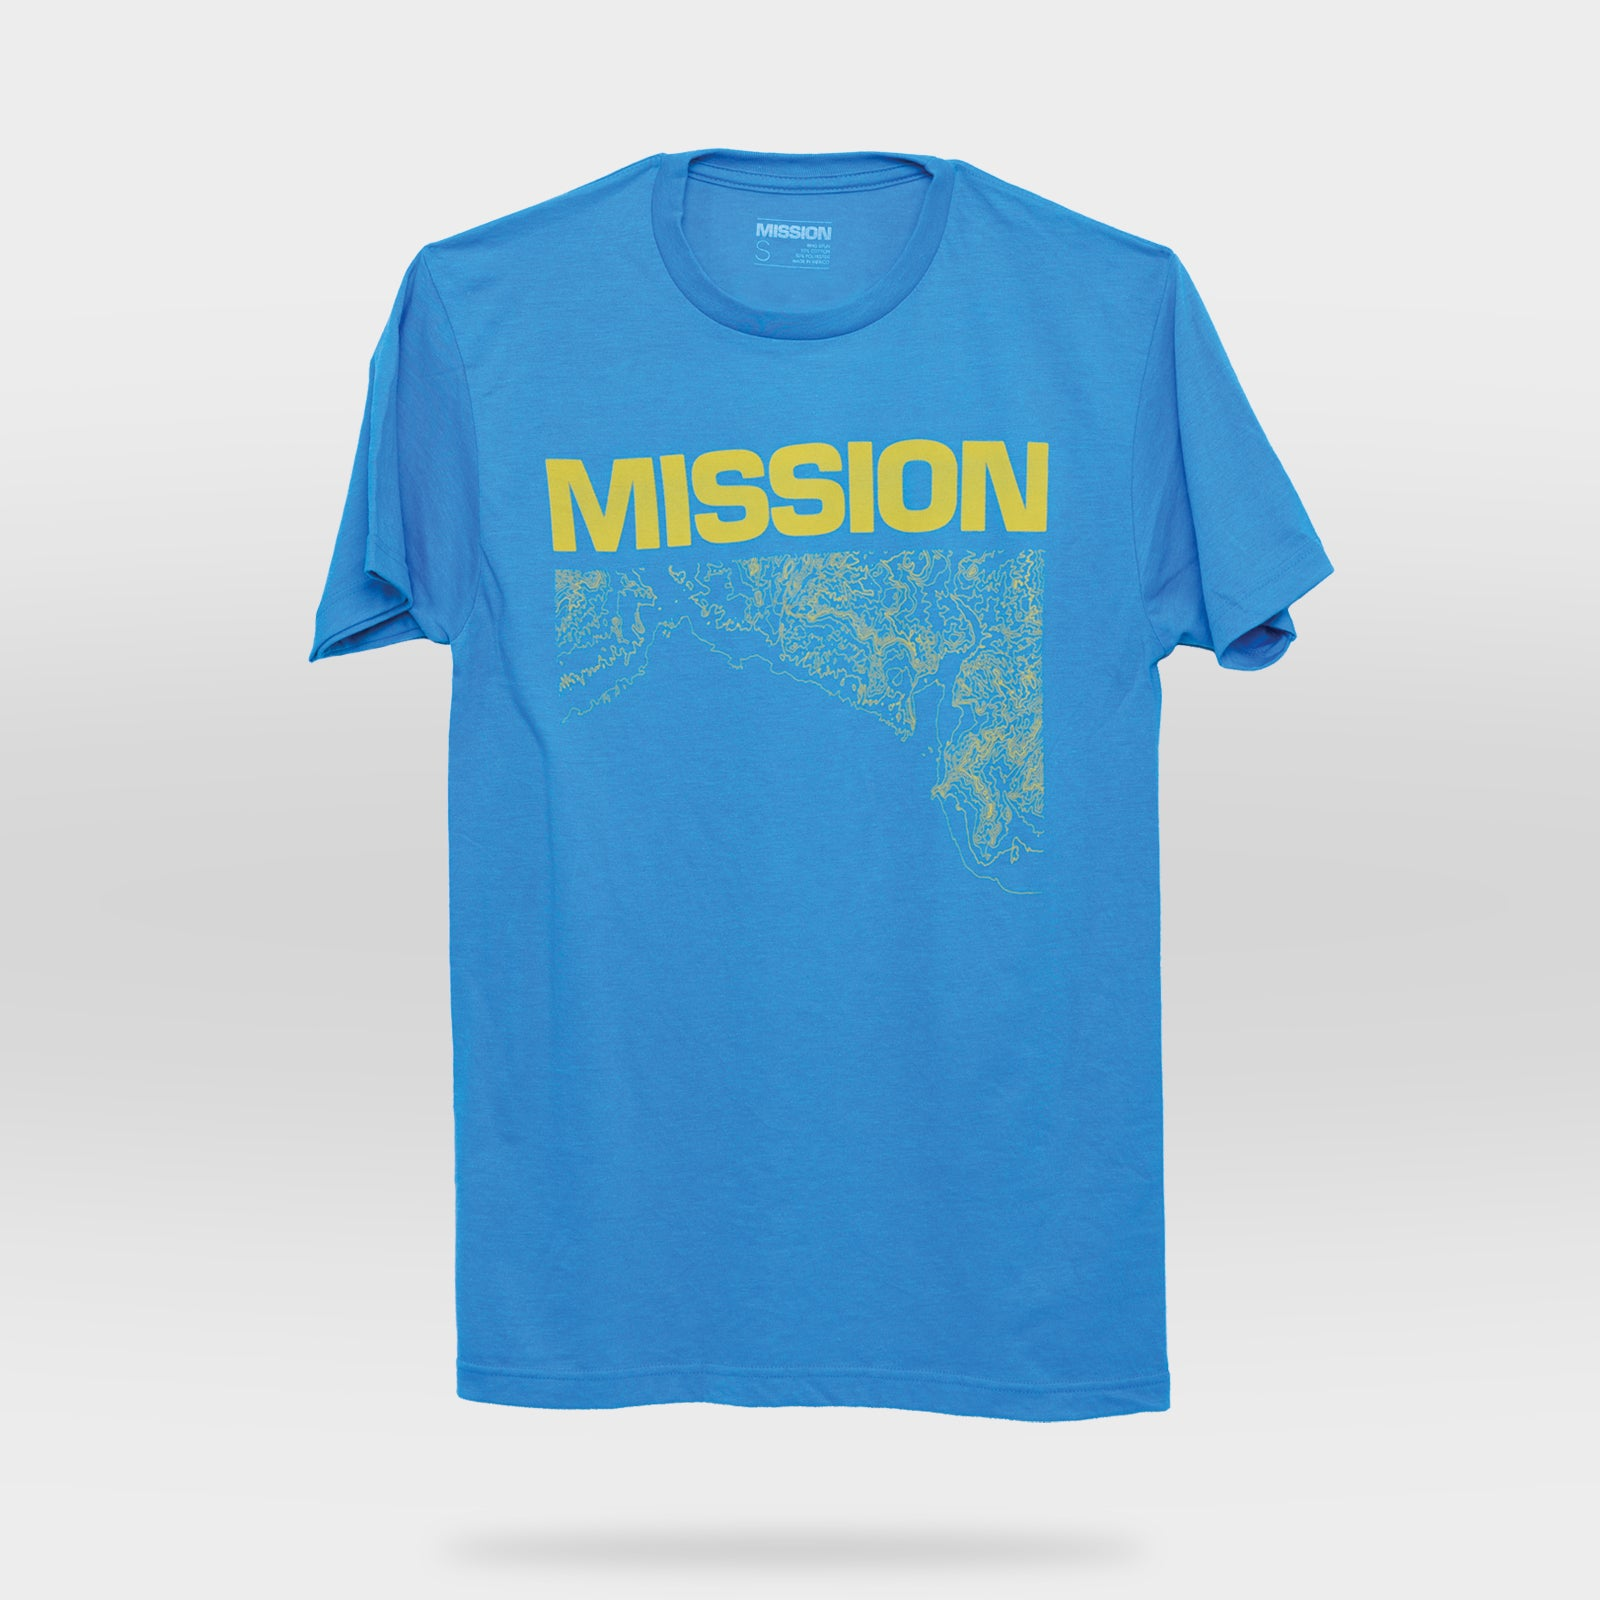 Mission Boat Gear Tees Wakesurfing Made Simple Graphic T Shirt 14 00 Mission Boat Gear